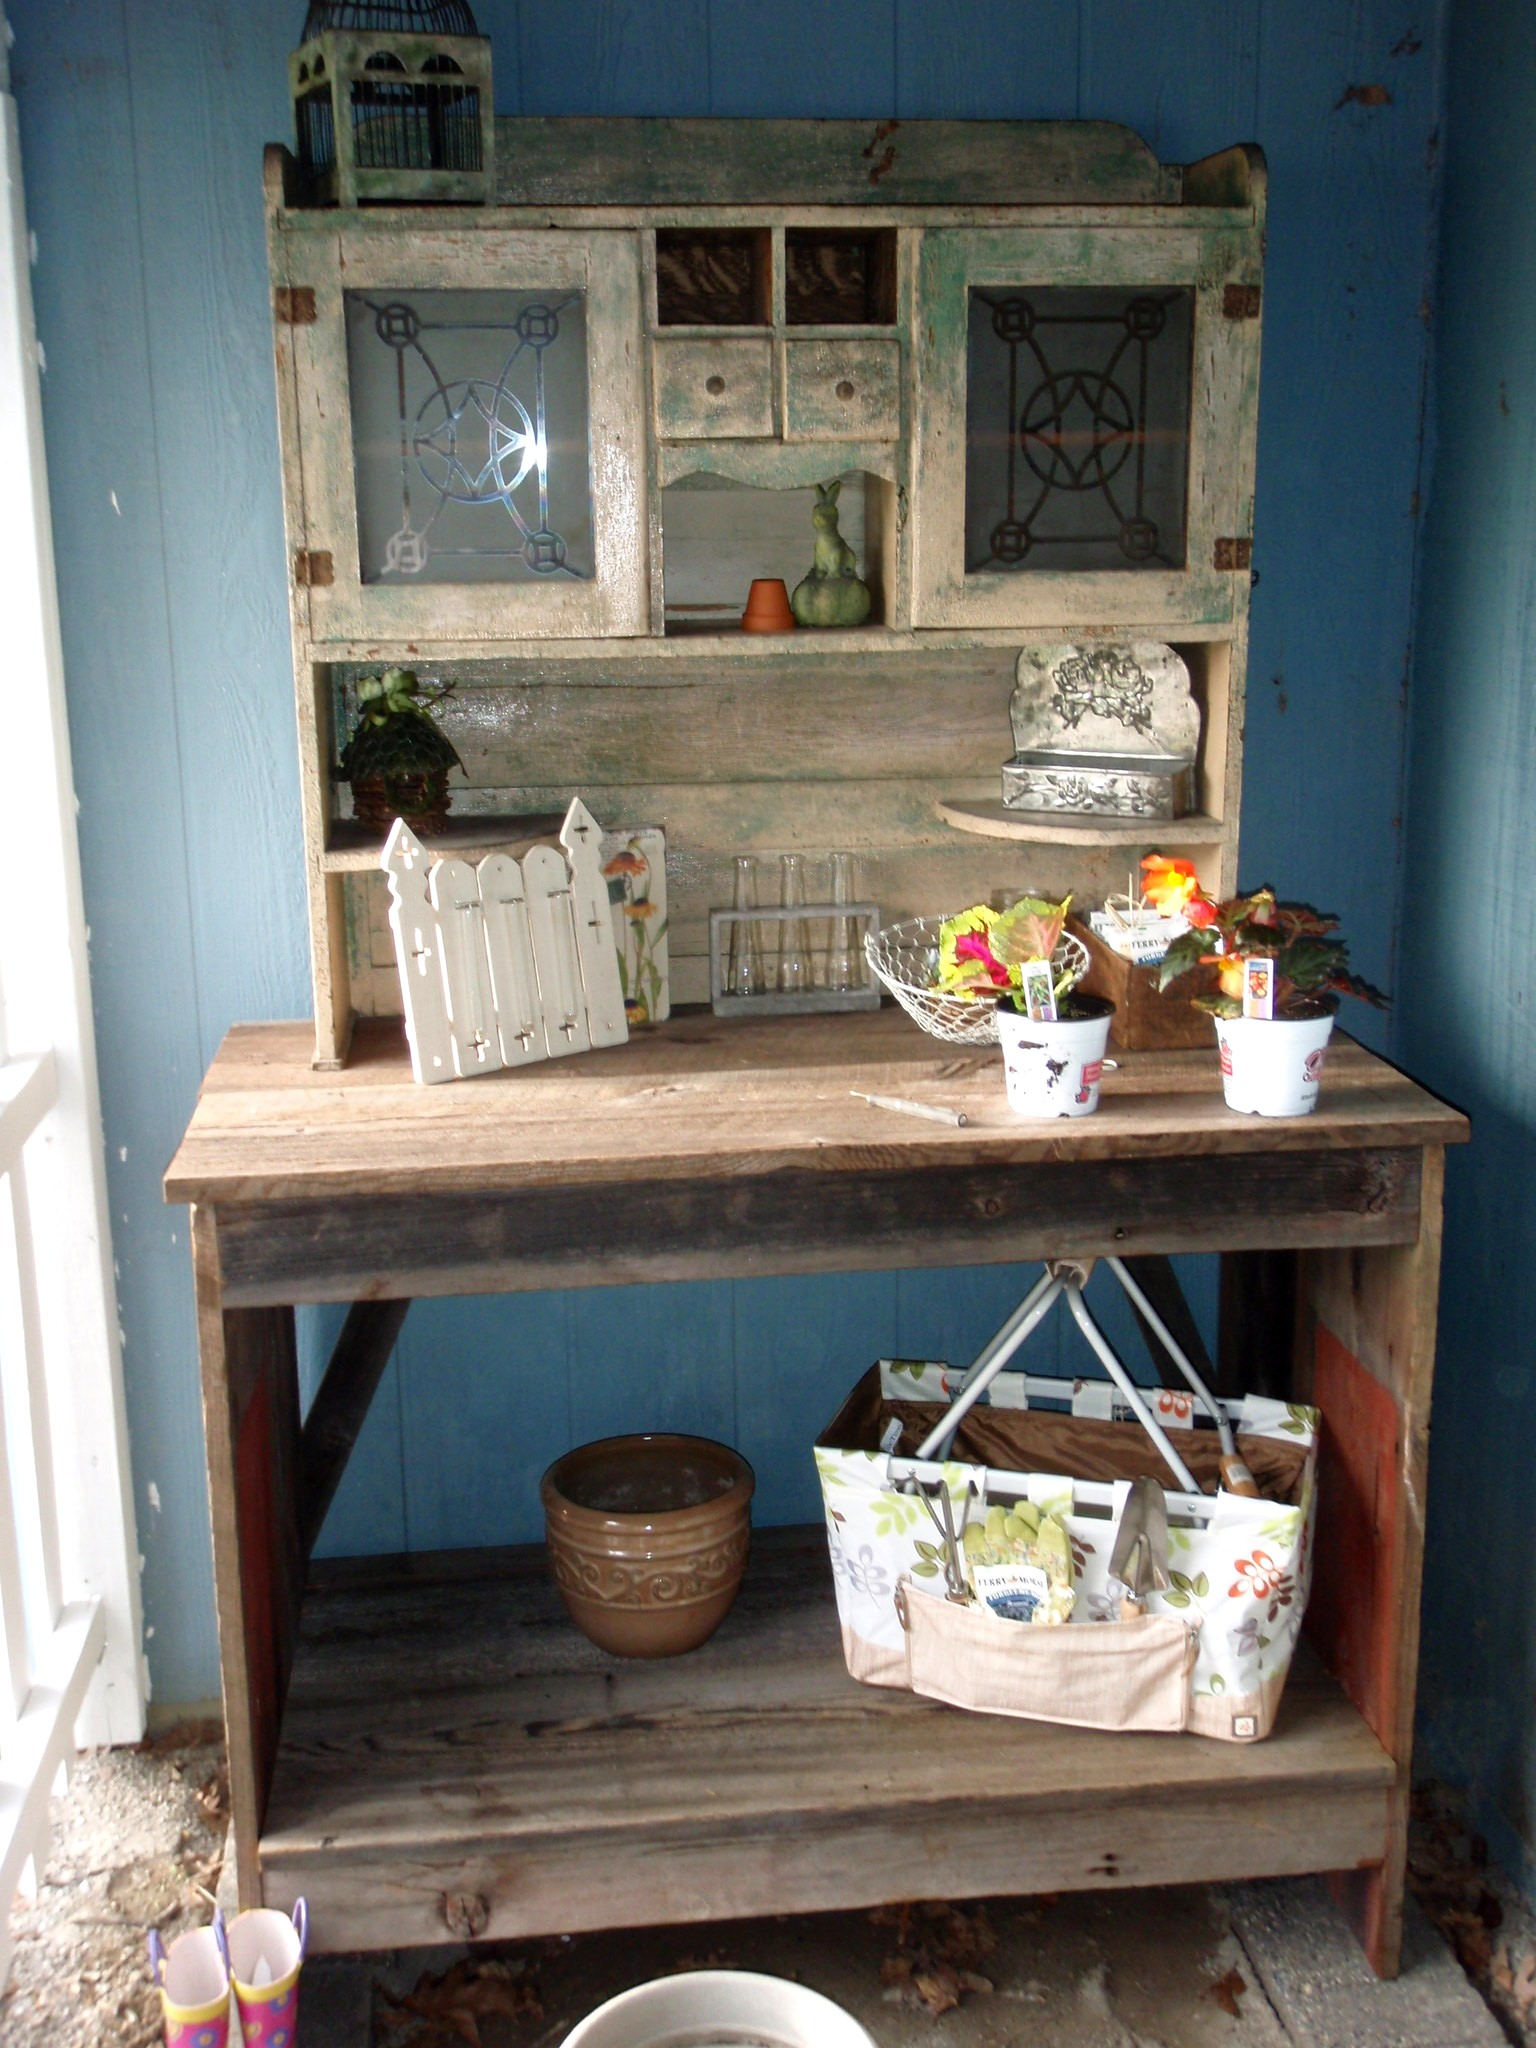 The potting bench made from 120 year old barn wood.